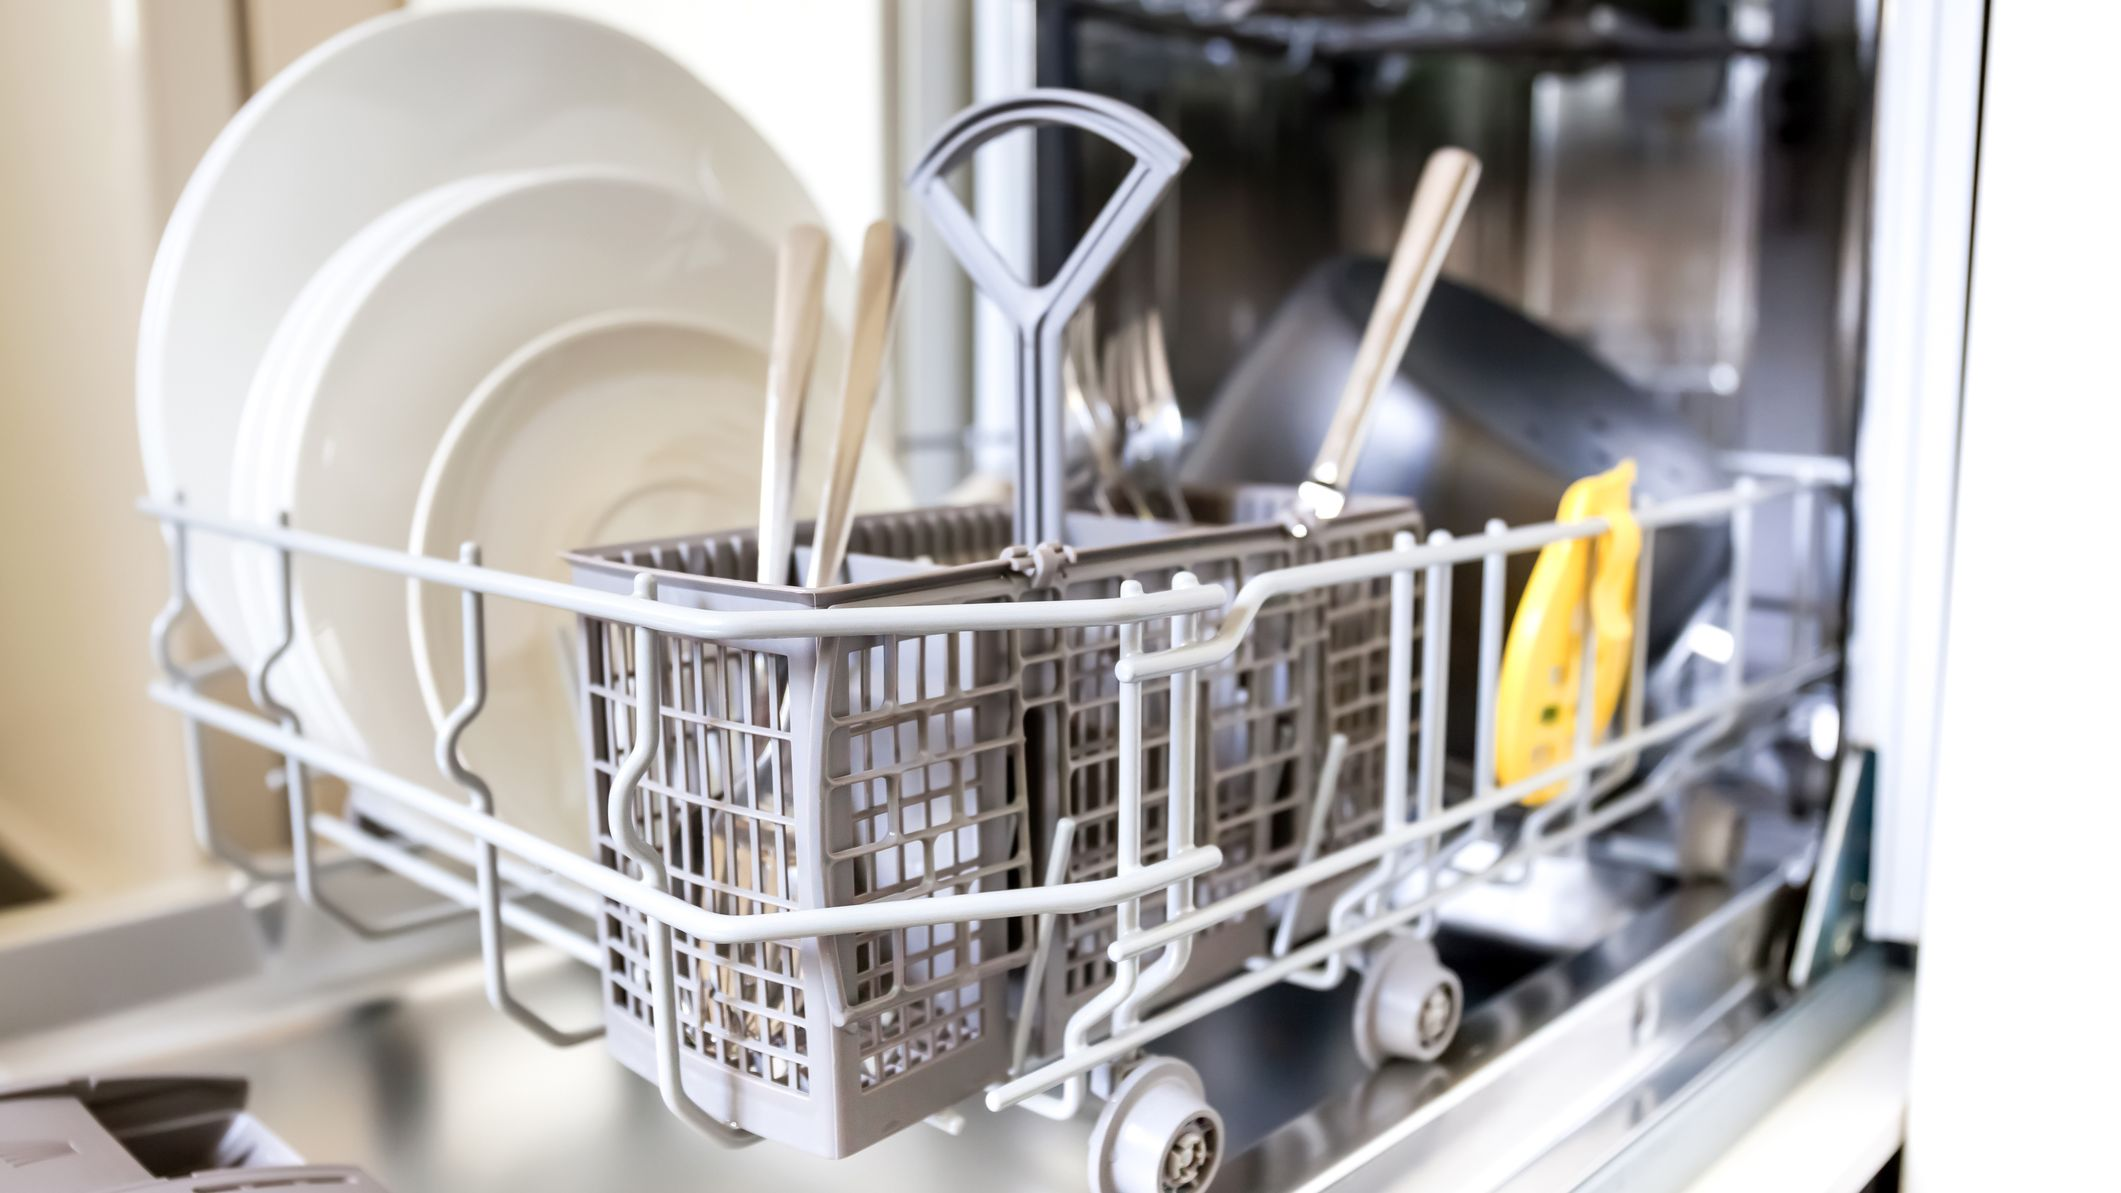 305fb776cd6 23 Things You Didn't Know Your Dishwasher Could Do—and 2 'Hacks' You ...